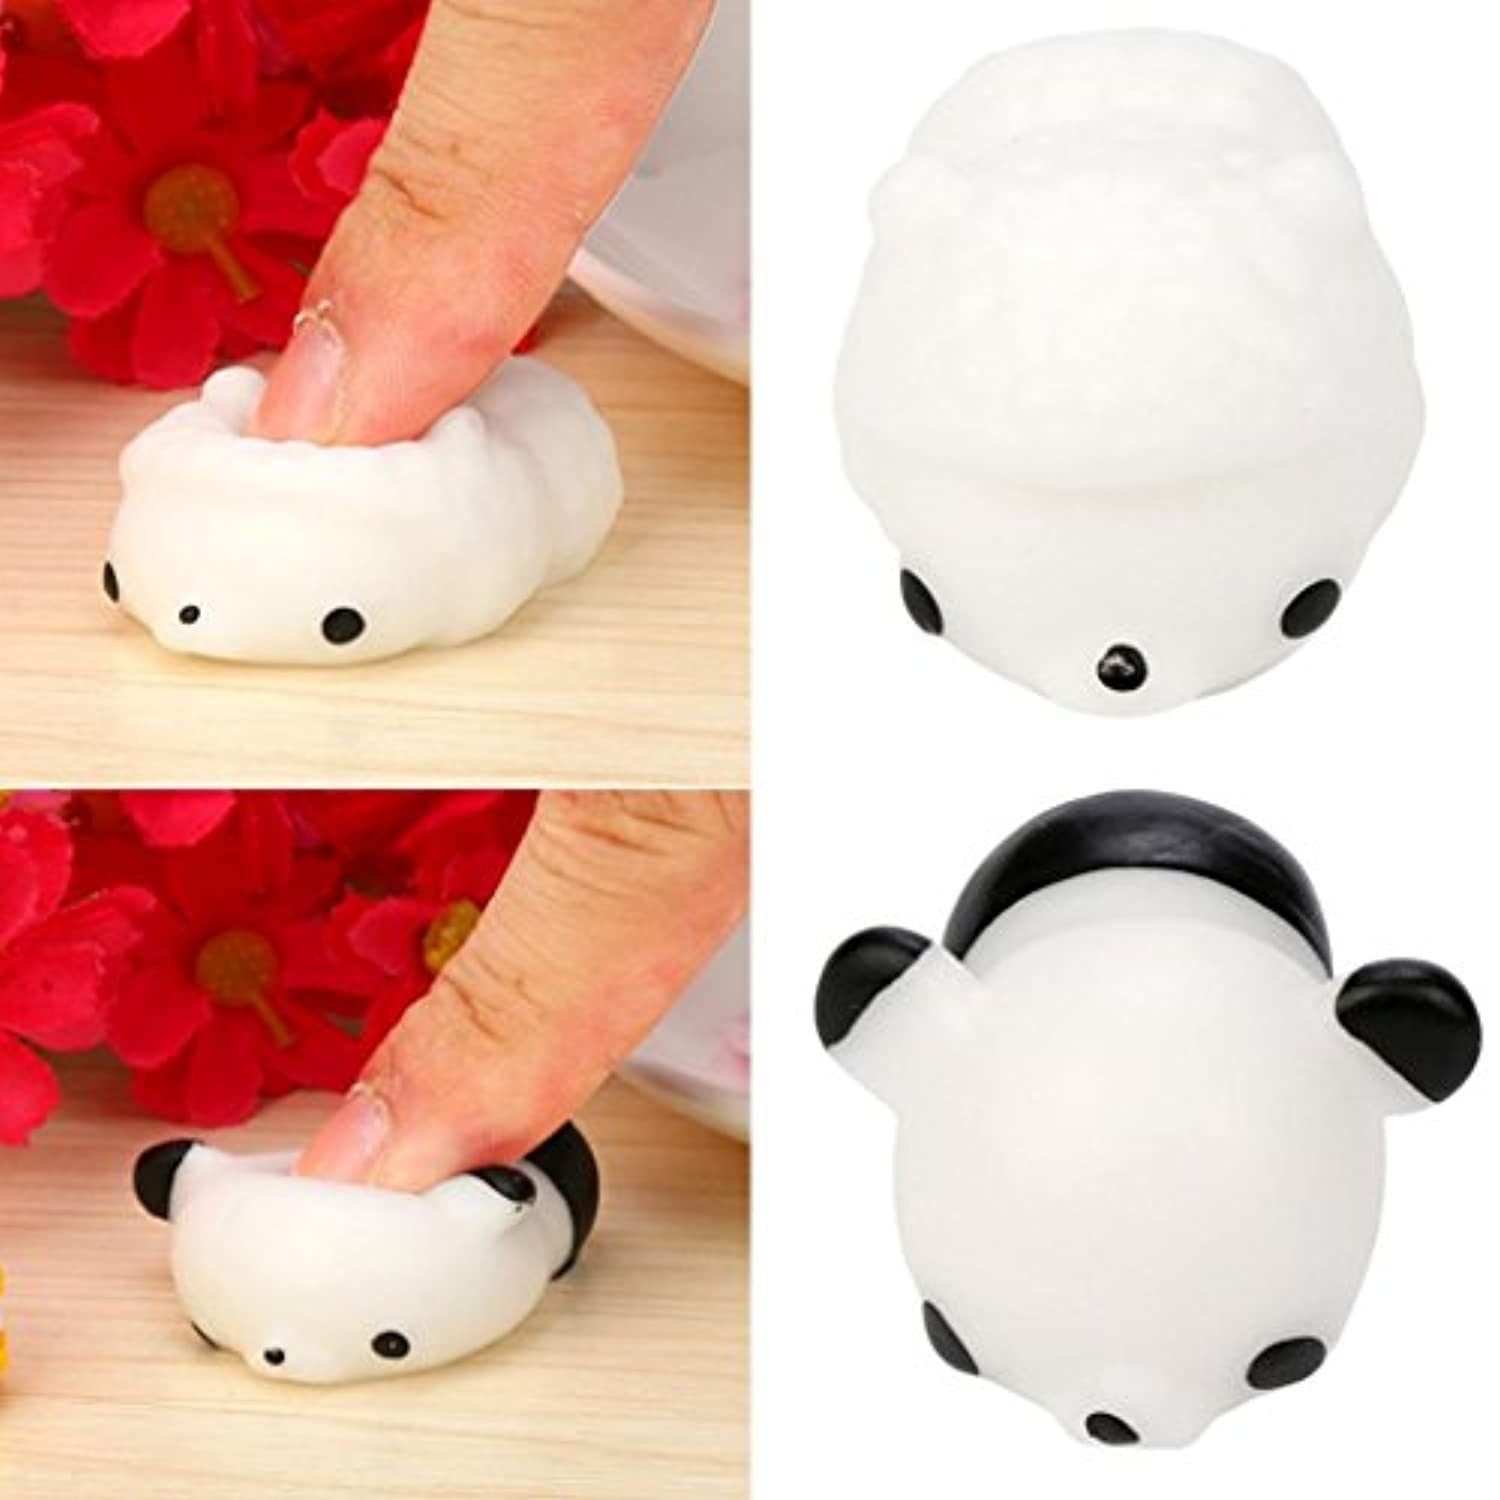 yjydada Squeezeパンダおもちゃ、かわいいMochi SquishyパンダSqueeze Healing Fun KawaiiおもちゃStress Reliever Decor